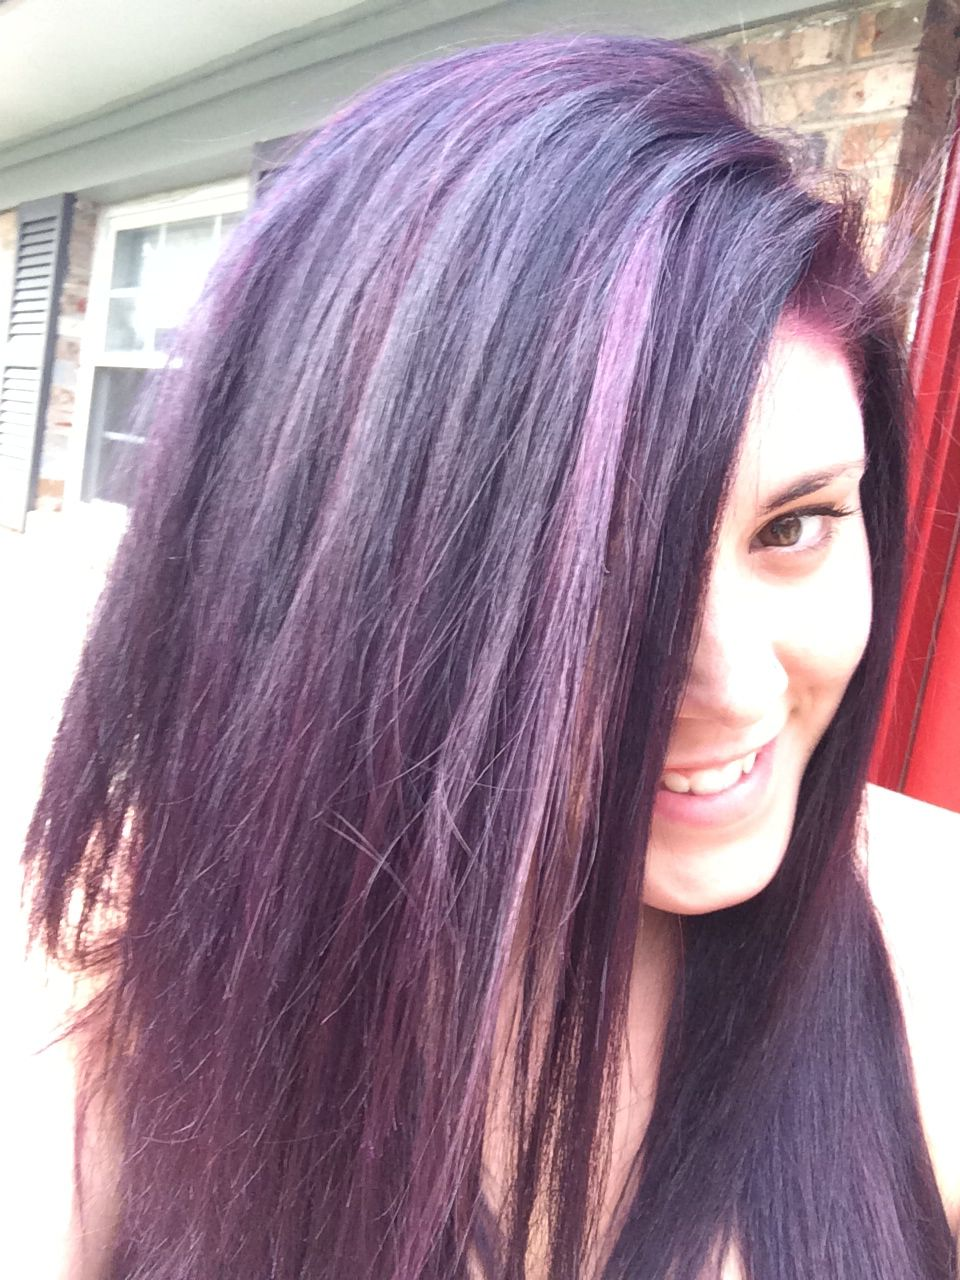 Blue Midnight hair color manic panic pictures exclusive photo